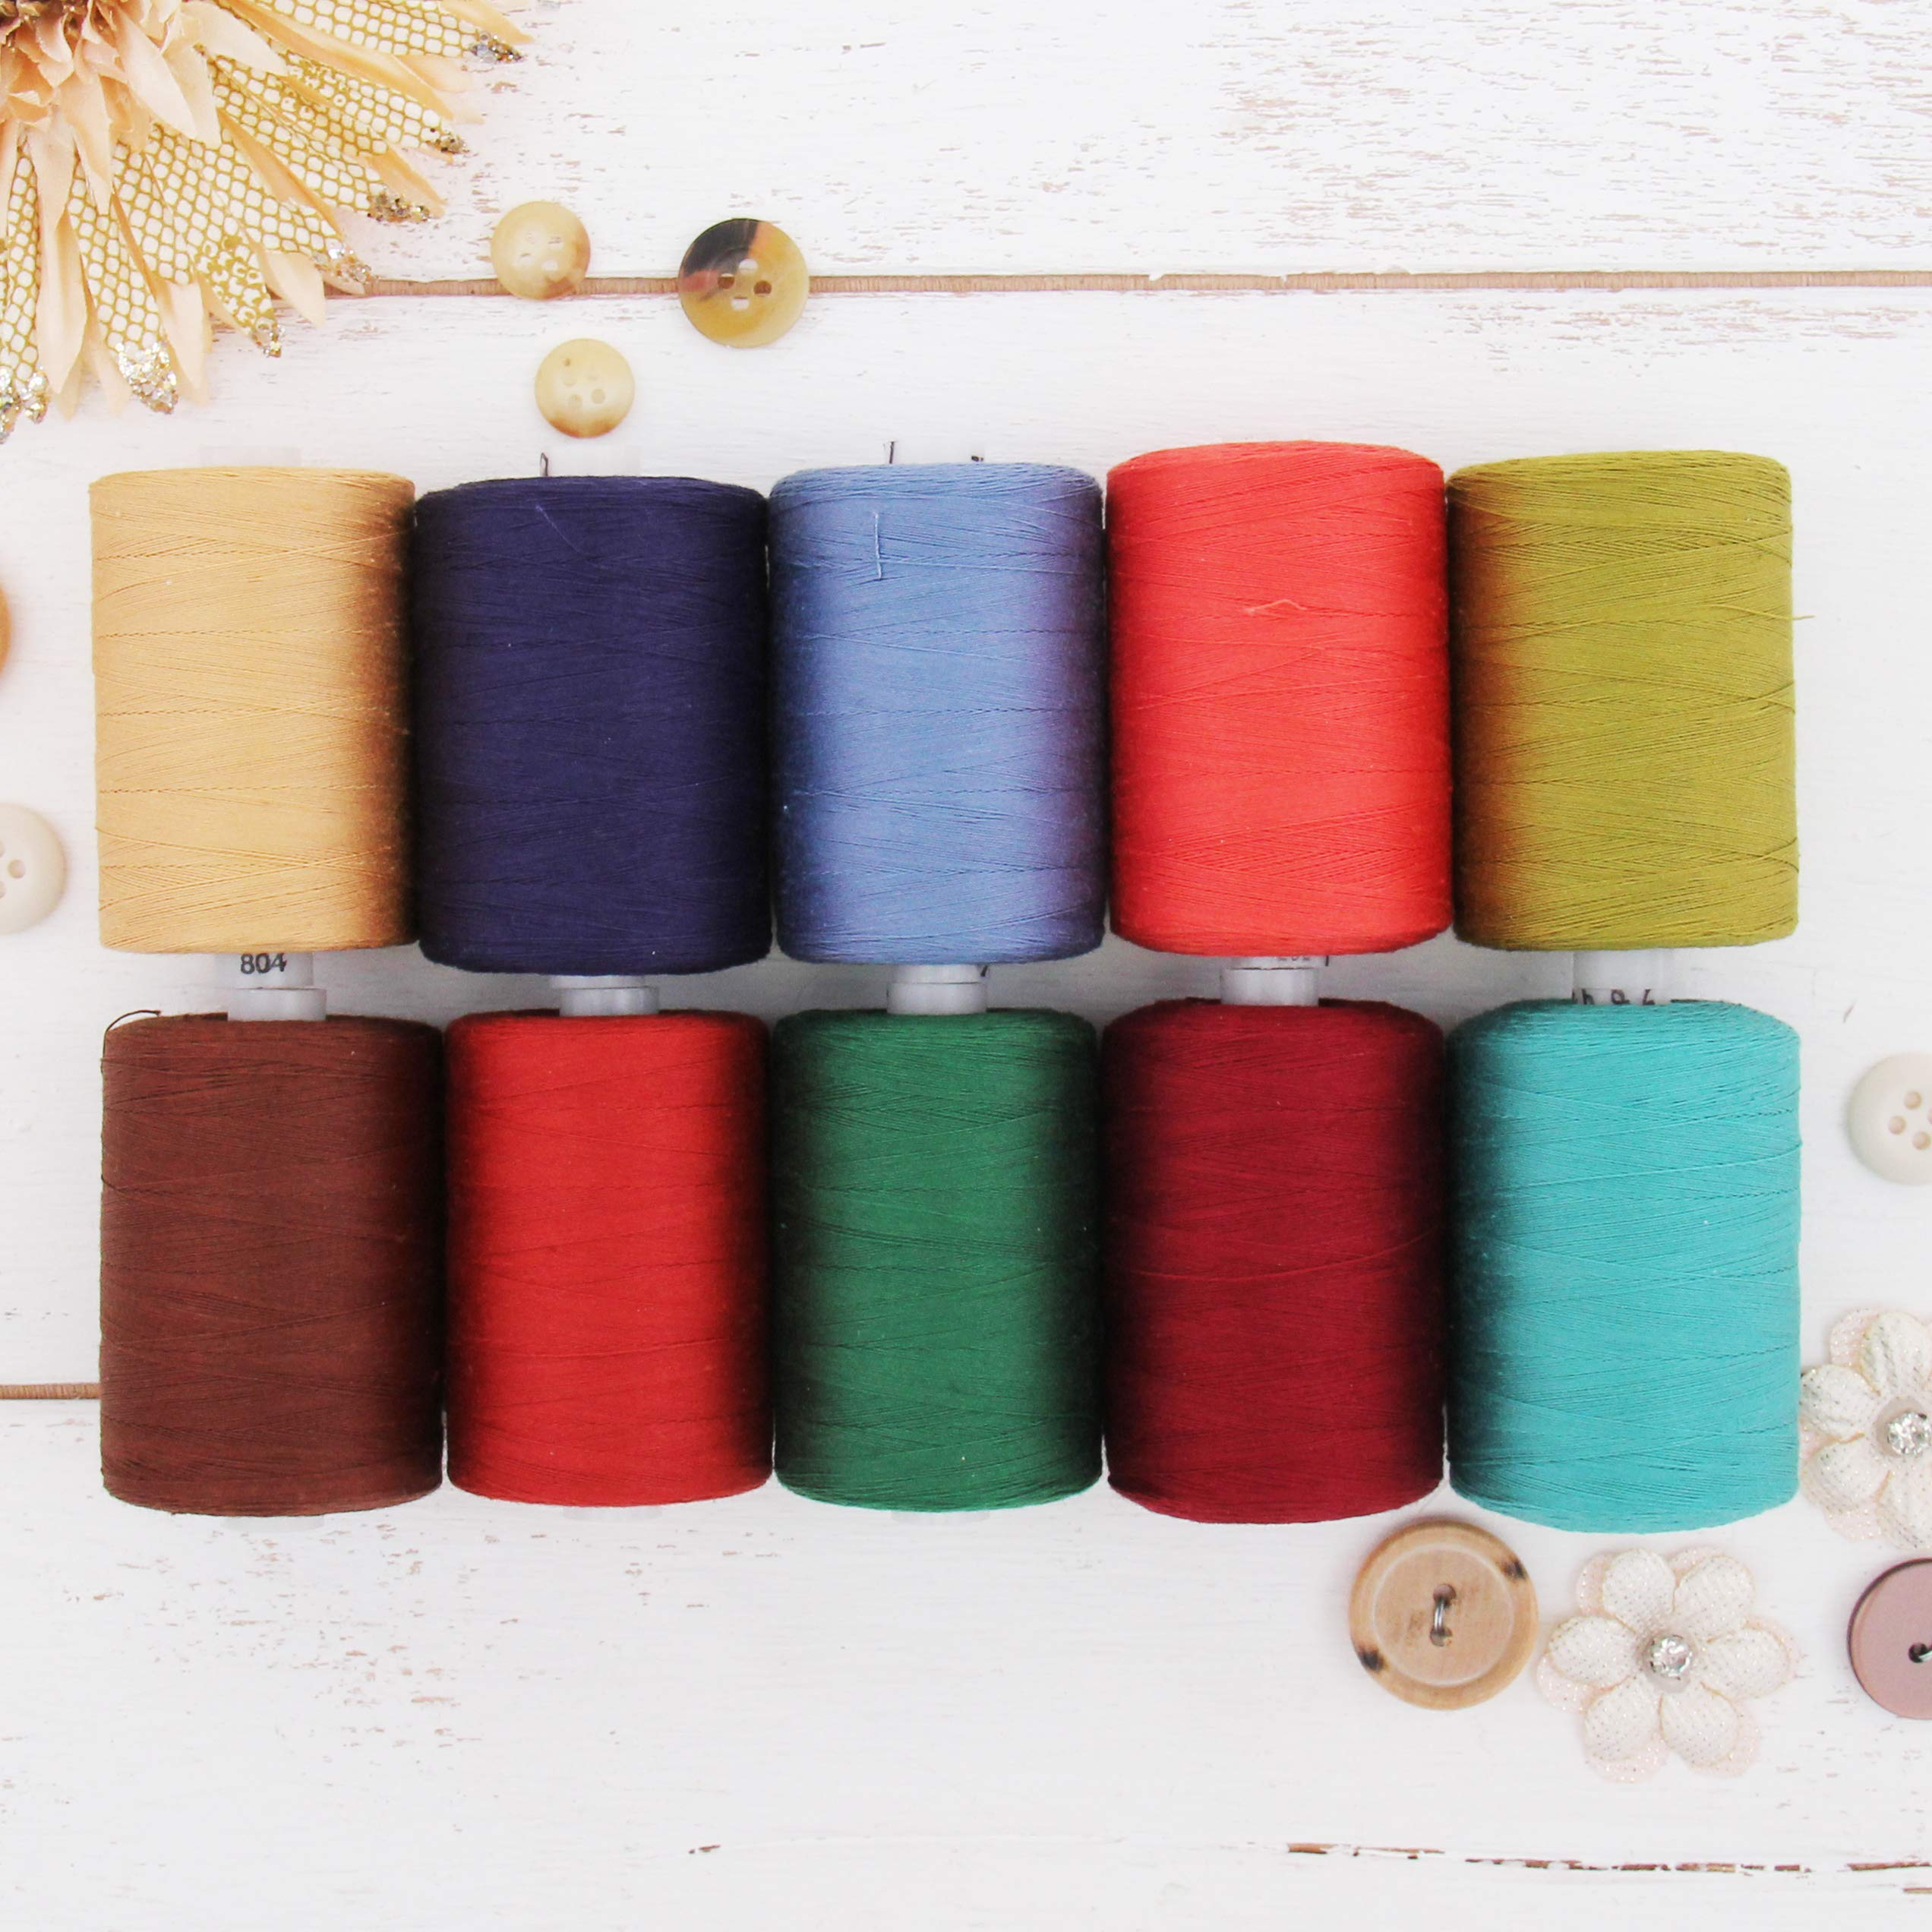 Threadart 100/% Cotton Thread Set 6 Rainbow Colors 1000M Long Staple /& Low Lint Spools 1100 Yards Over 20 Other Sets Available For Quilting /& Sewing 50//3 Weight